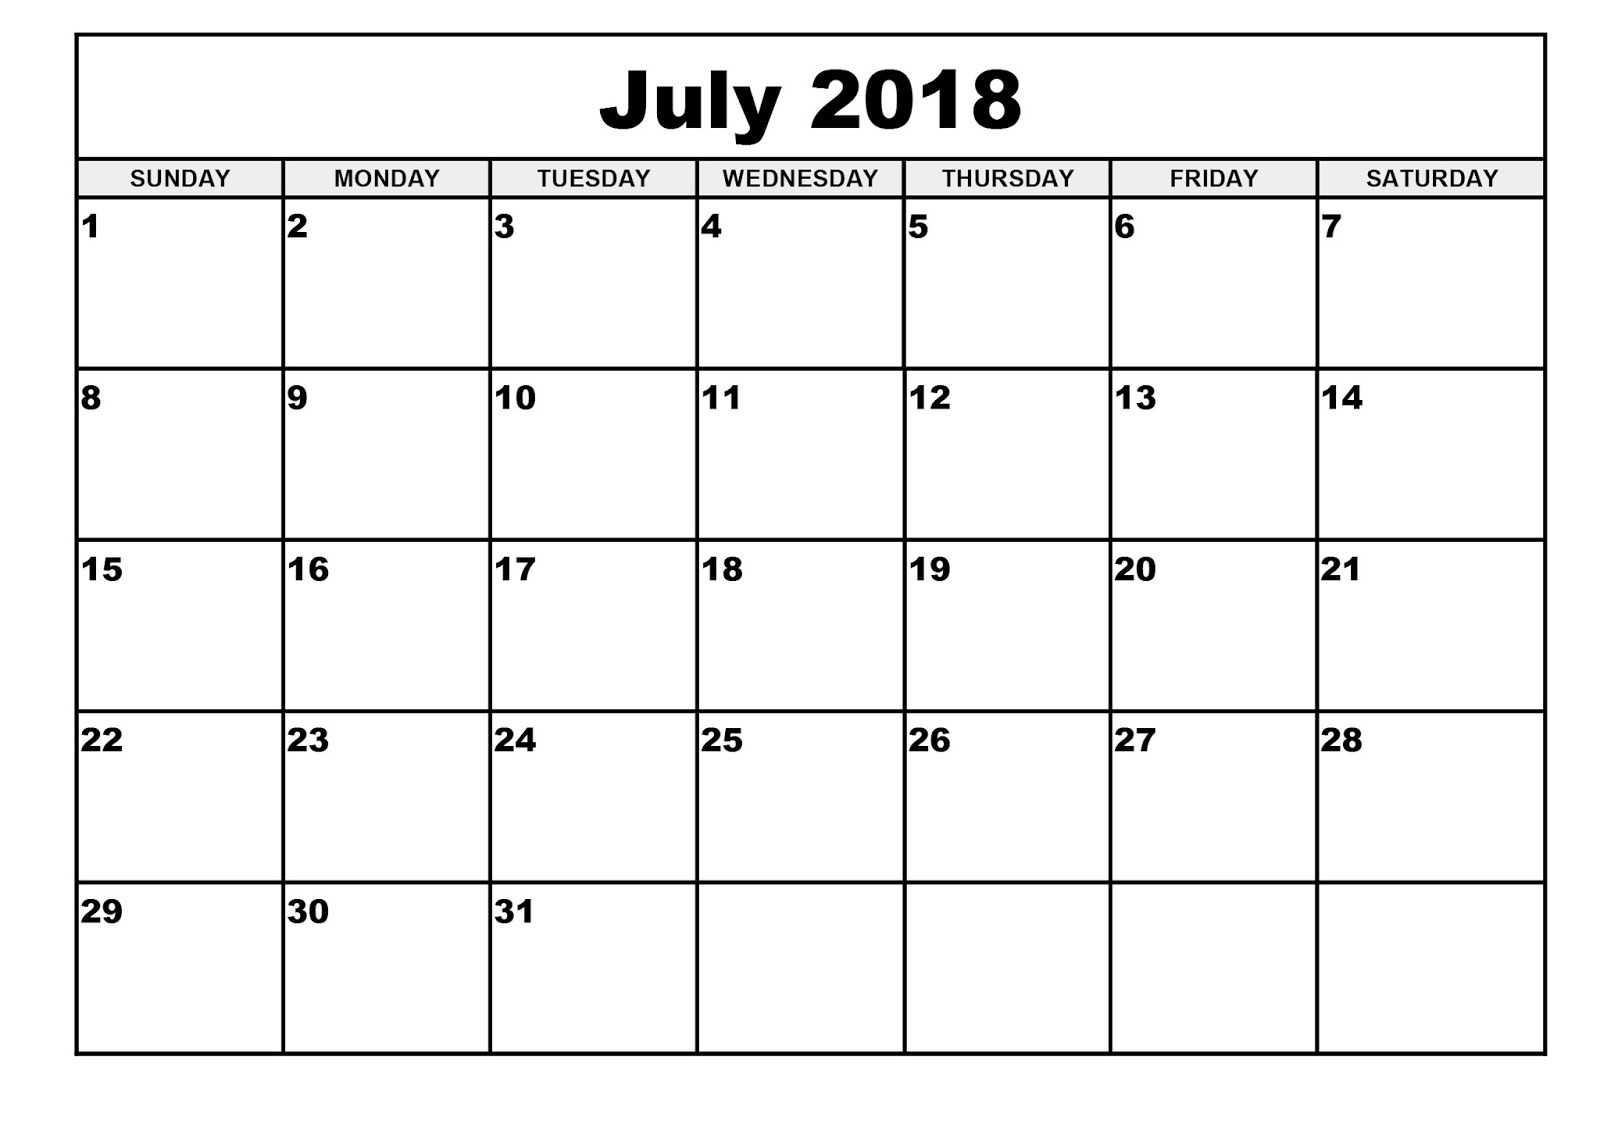 Free July 2018 Calendar Printable Blank Templates - Word Pdf within Blank Calendar Print-Outs Fill In With Holidays